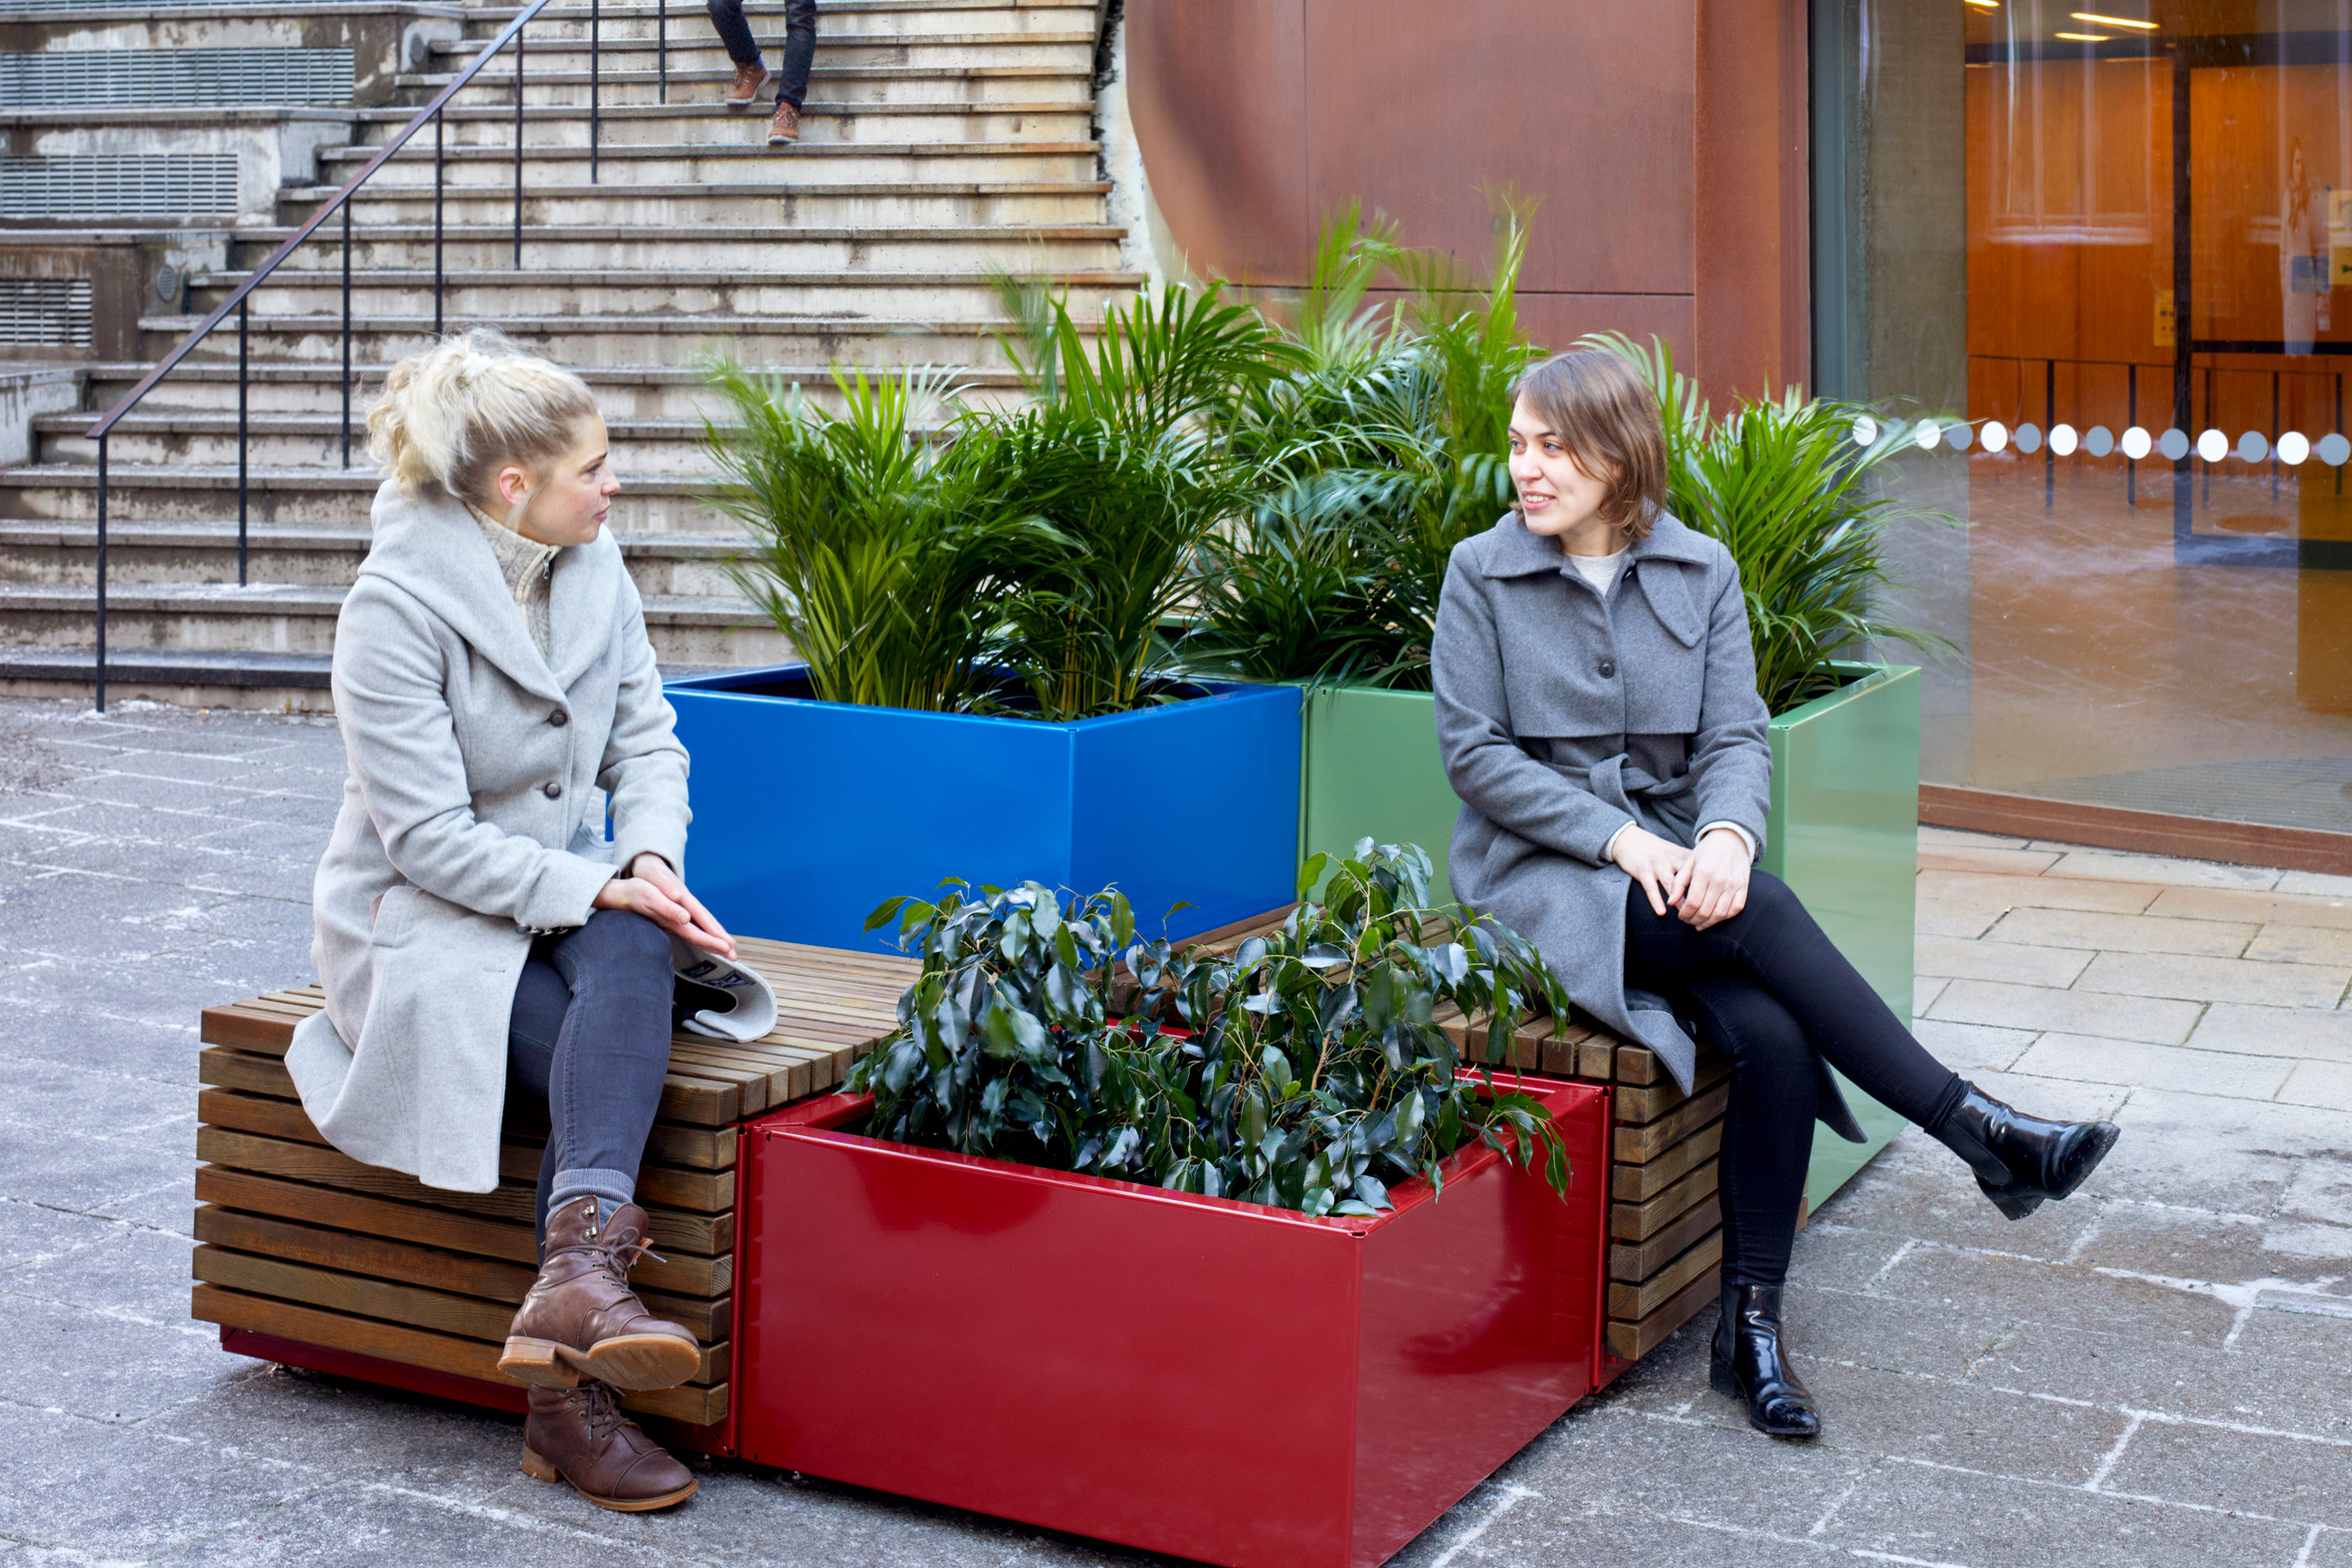 The Code bench system and planter by Vestre